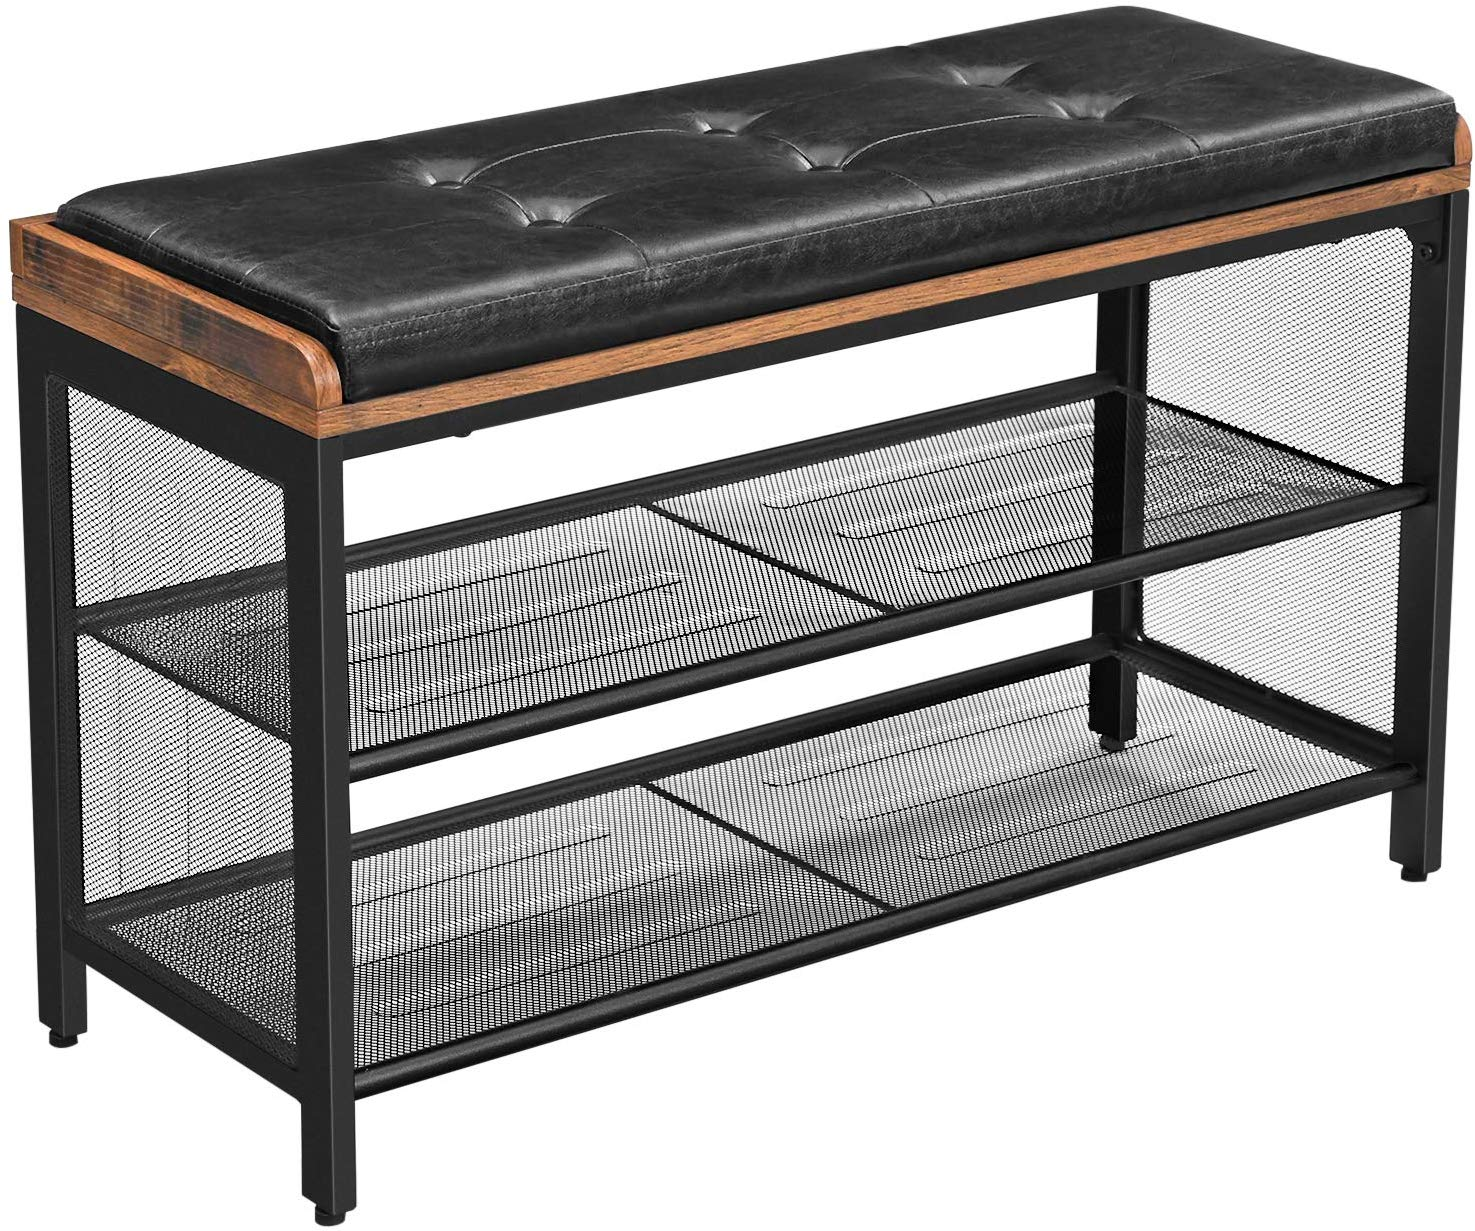 Shop hawkinswoodshop.com for discounted solid wood & metal modern, traditional, contemporary, custom & farmhouse furniture including our Industrial Padded Shoe Entryway Bench w/ Metal Shelving. Ask about our free nationwide freight delivery or assembly services today.